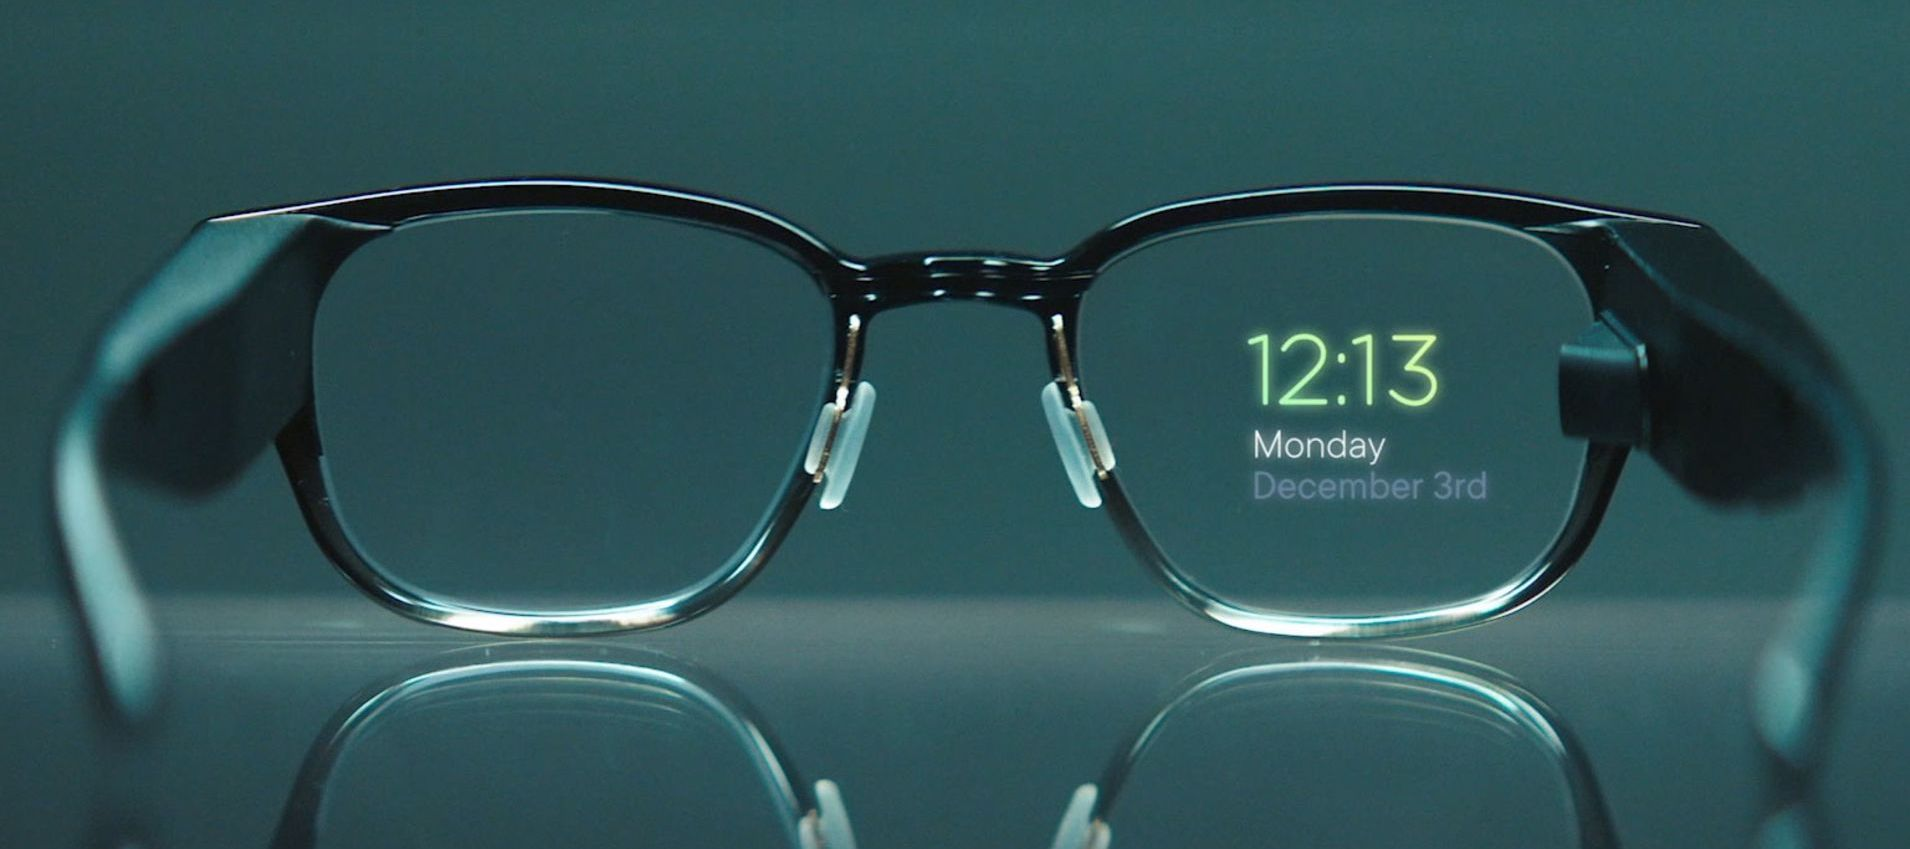 Prototyping The Future of Smart Glasses